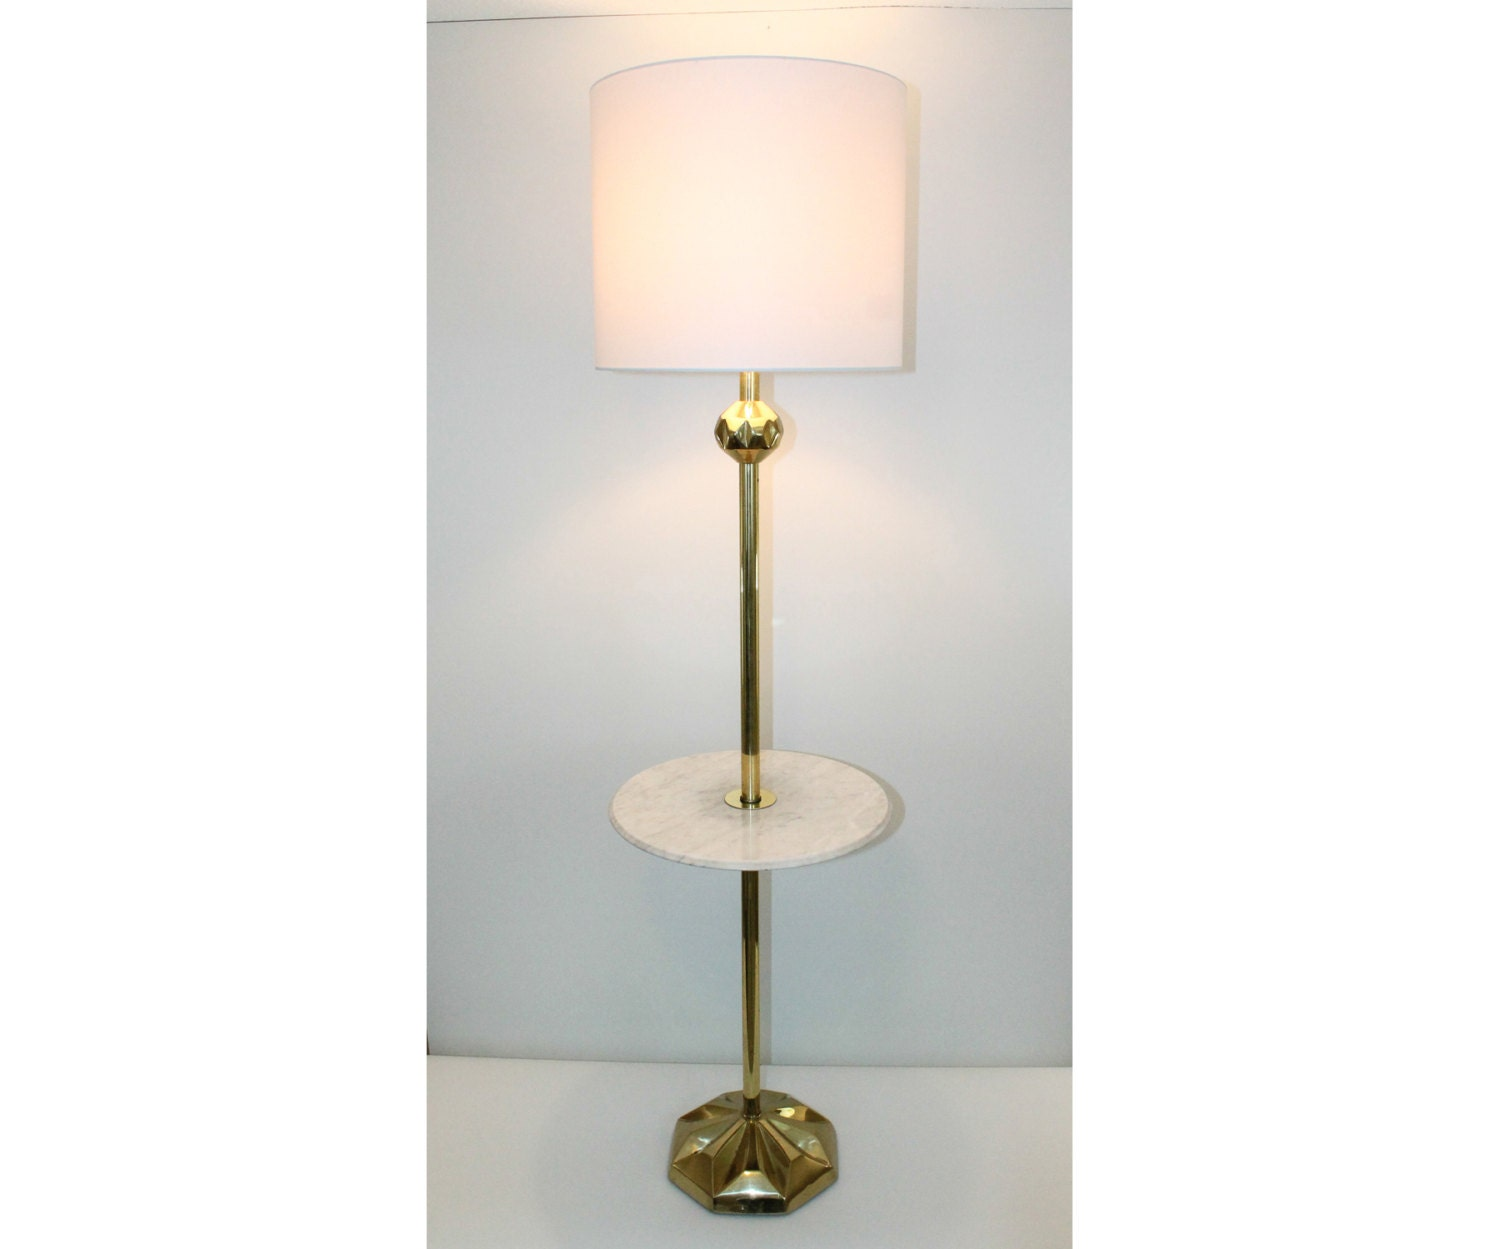 Hollywood regency italian marble brass floor lamp table for Floor lamp with table